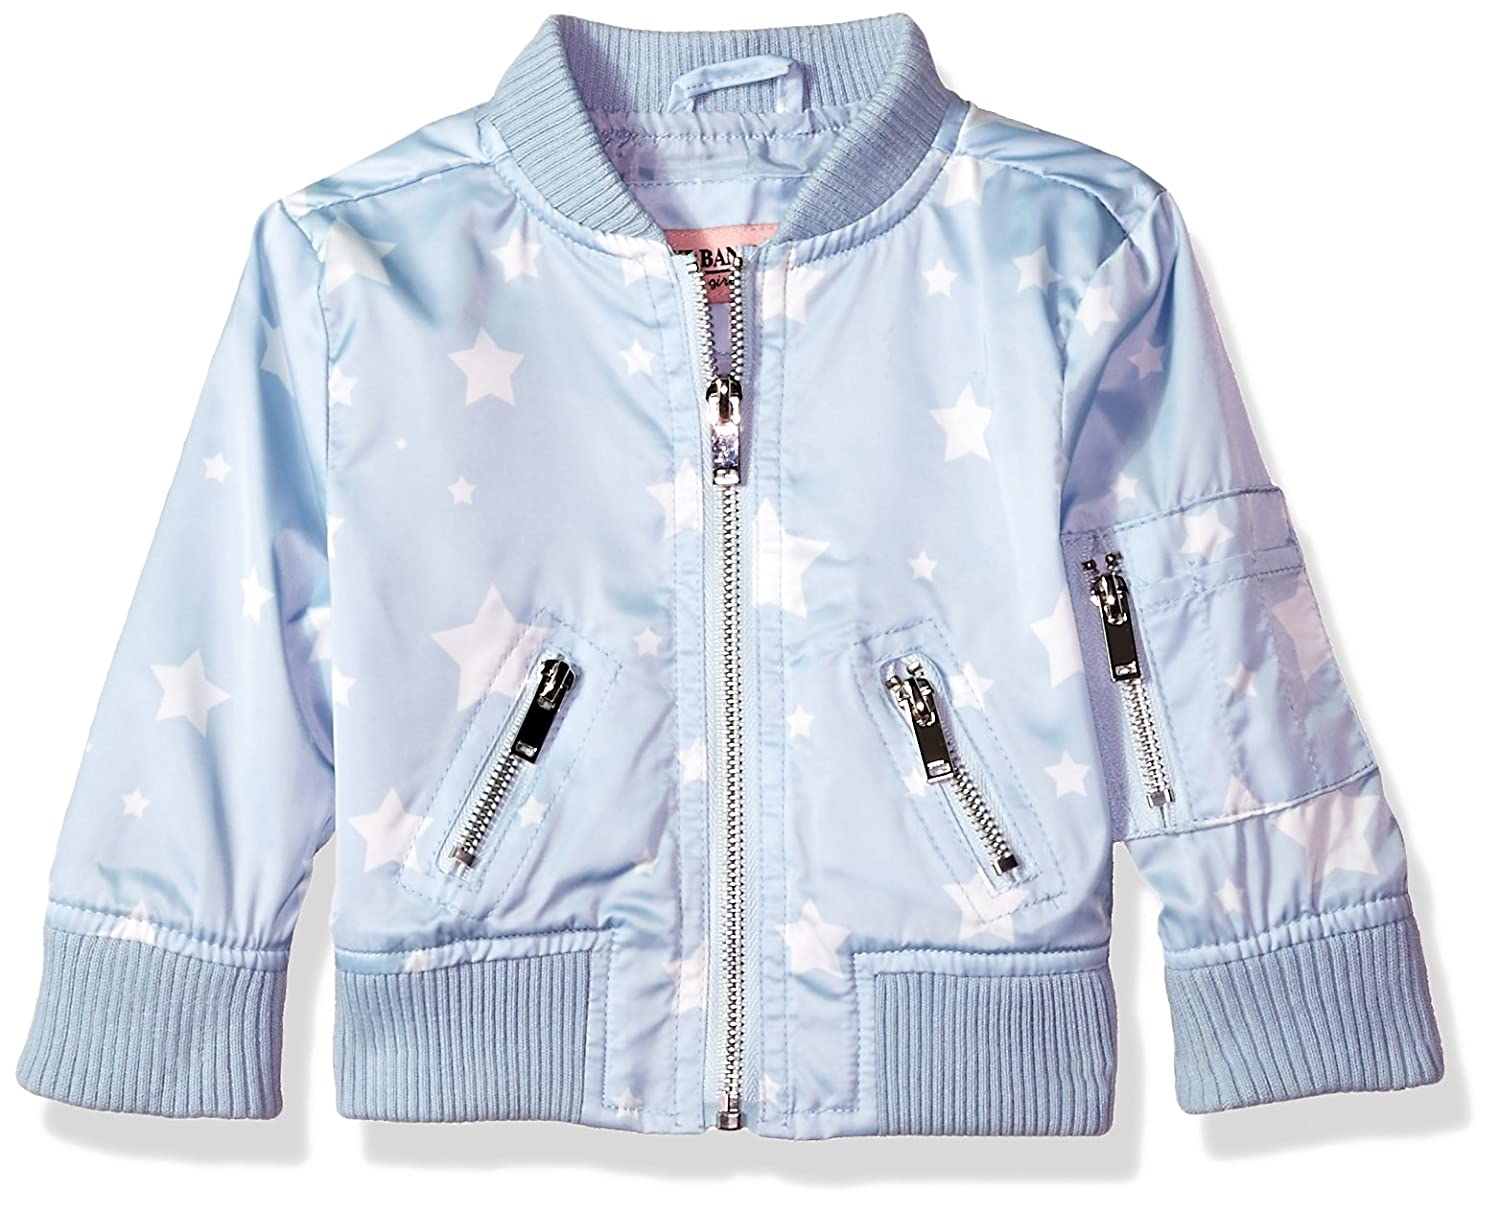 910e79b2b20d Amazon.com  Urban Republic Baby Girls Bomber Jacket